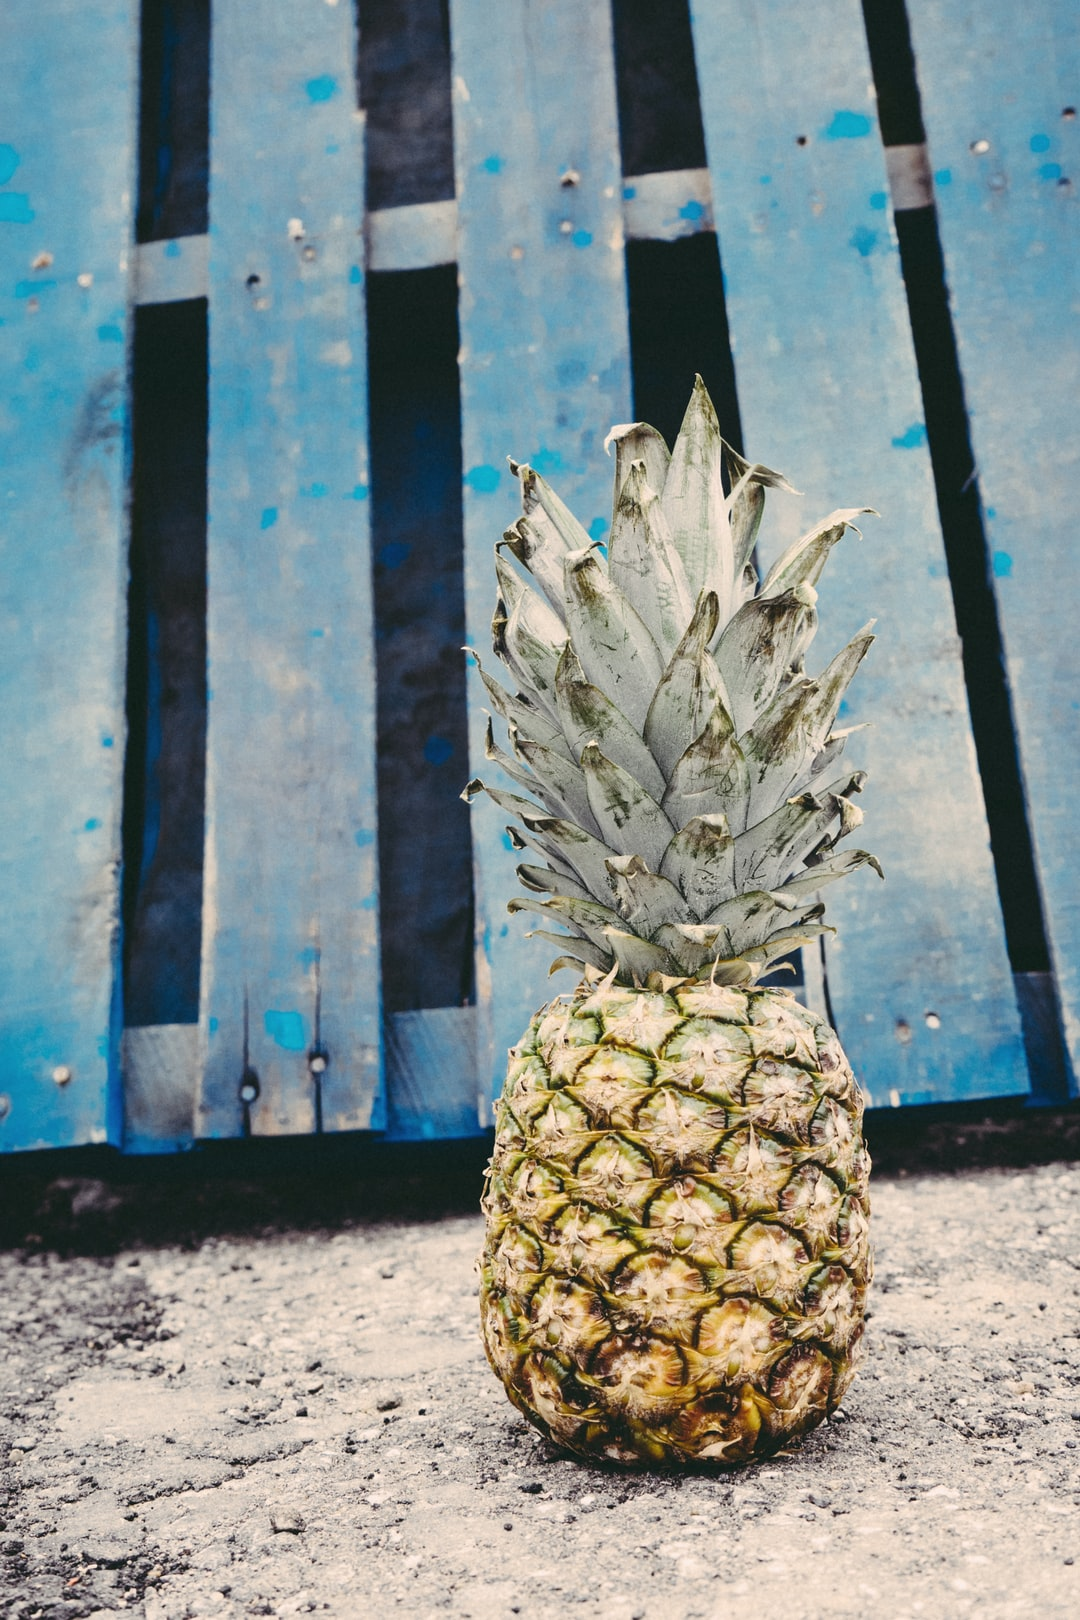 Pineapple Image available for free download